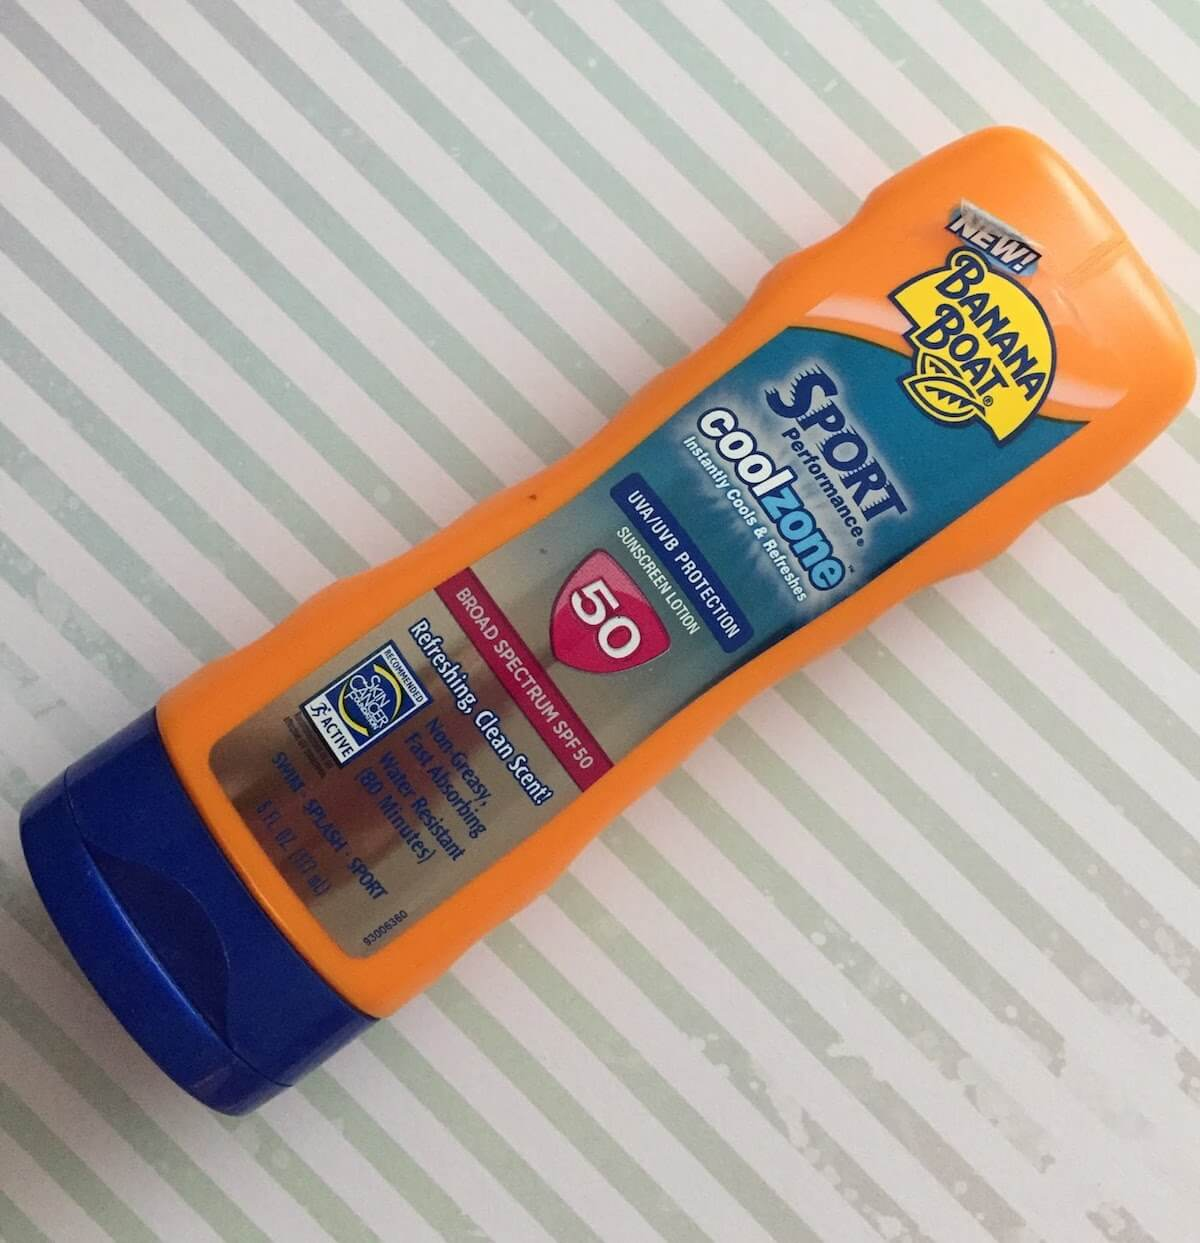 banana boat sport cool zone sunscreen review